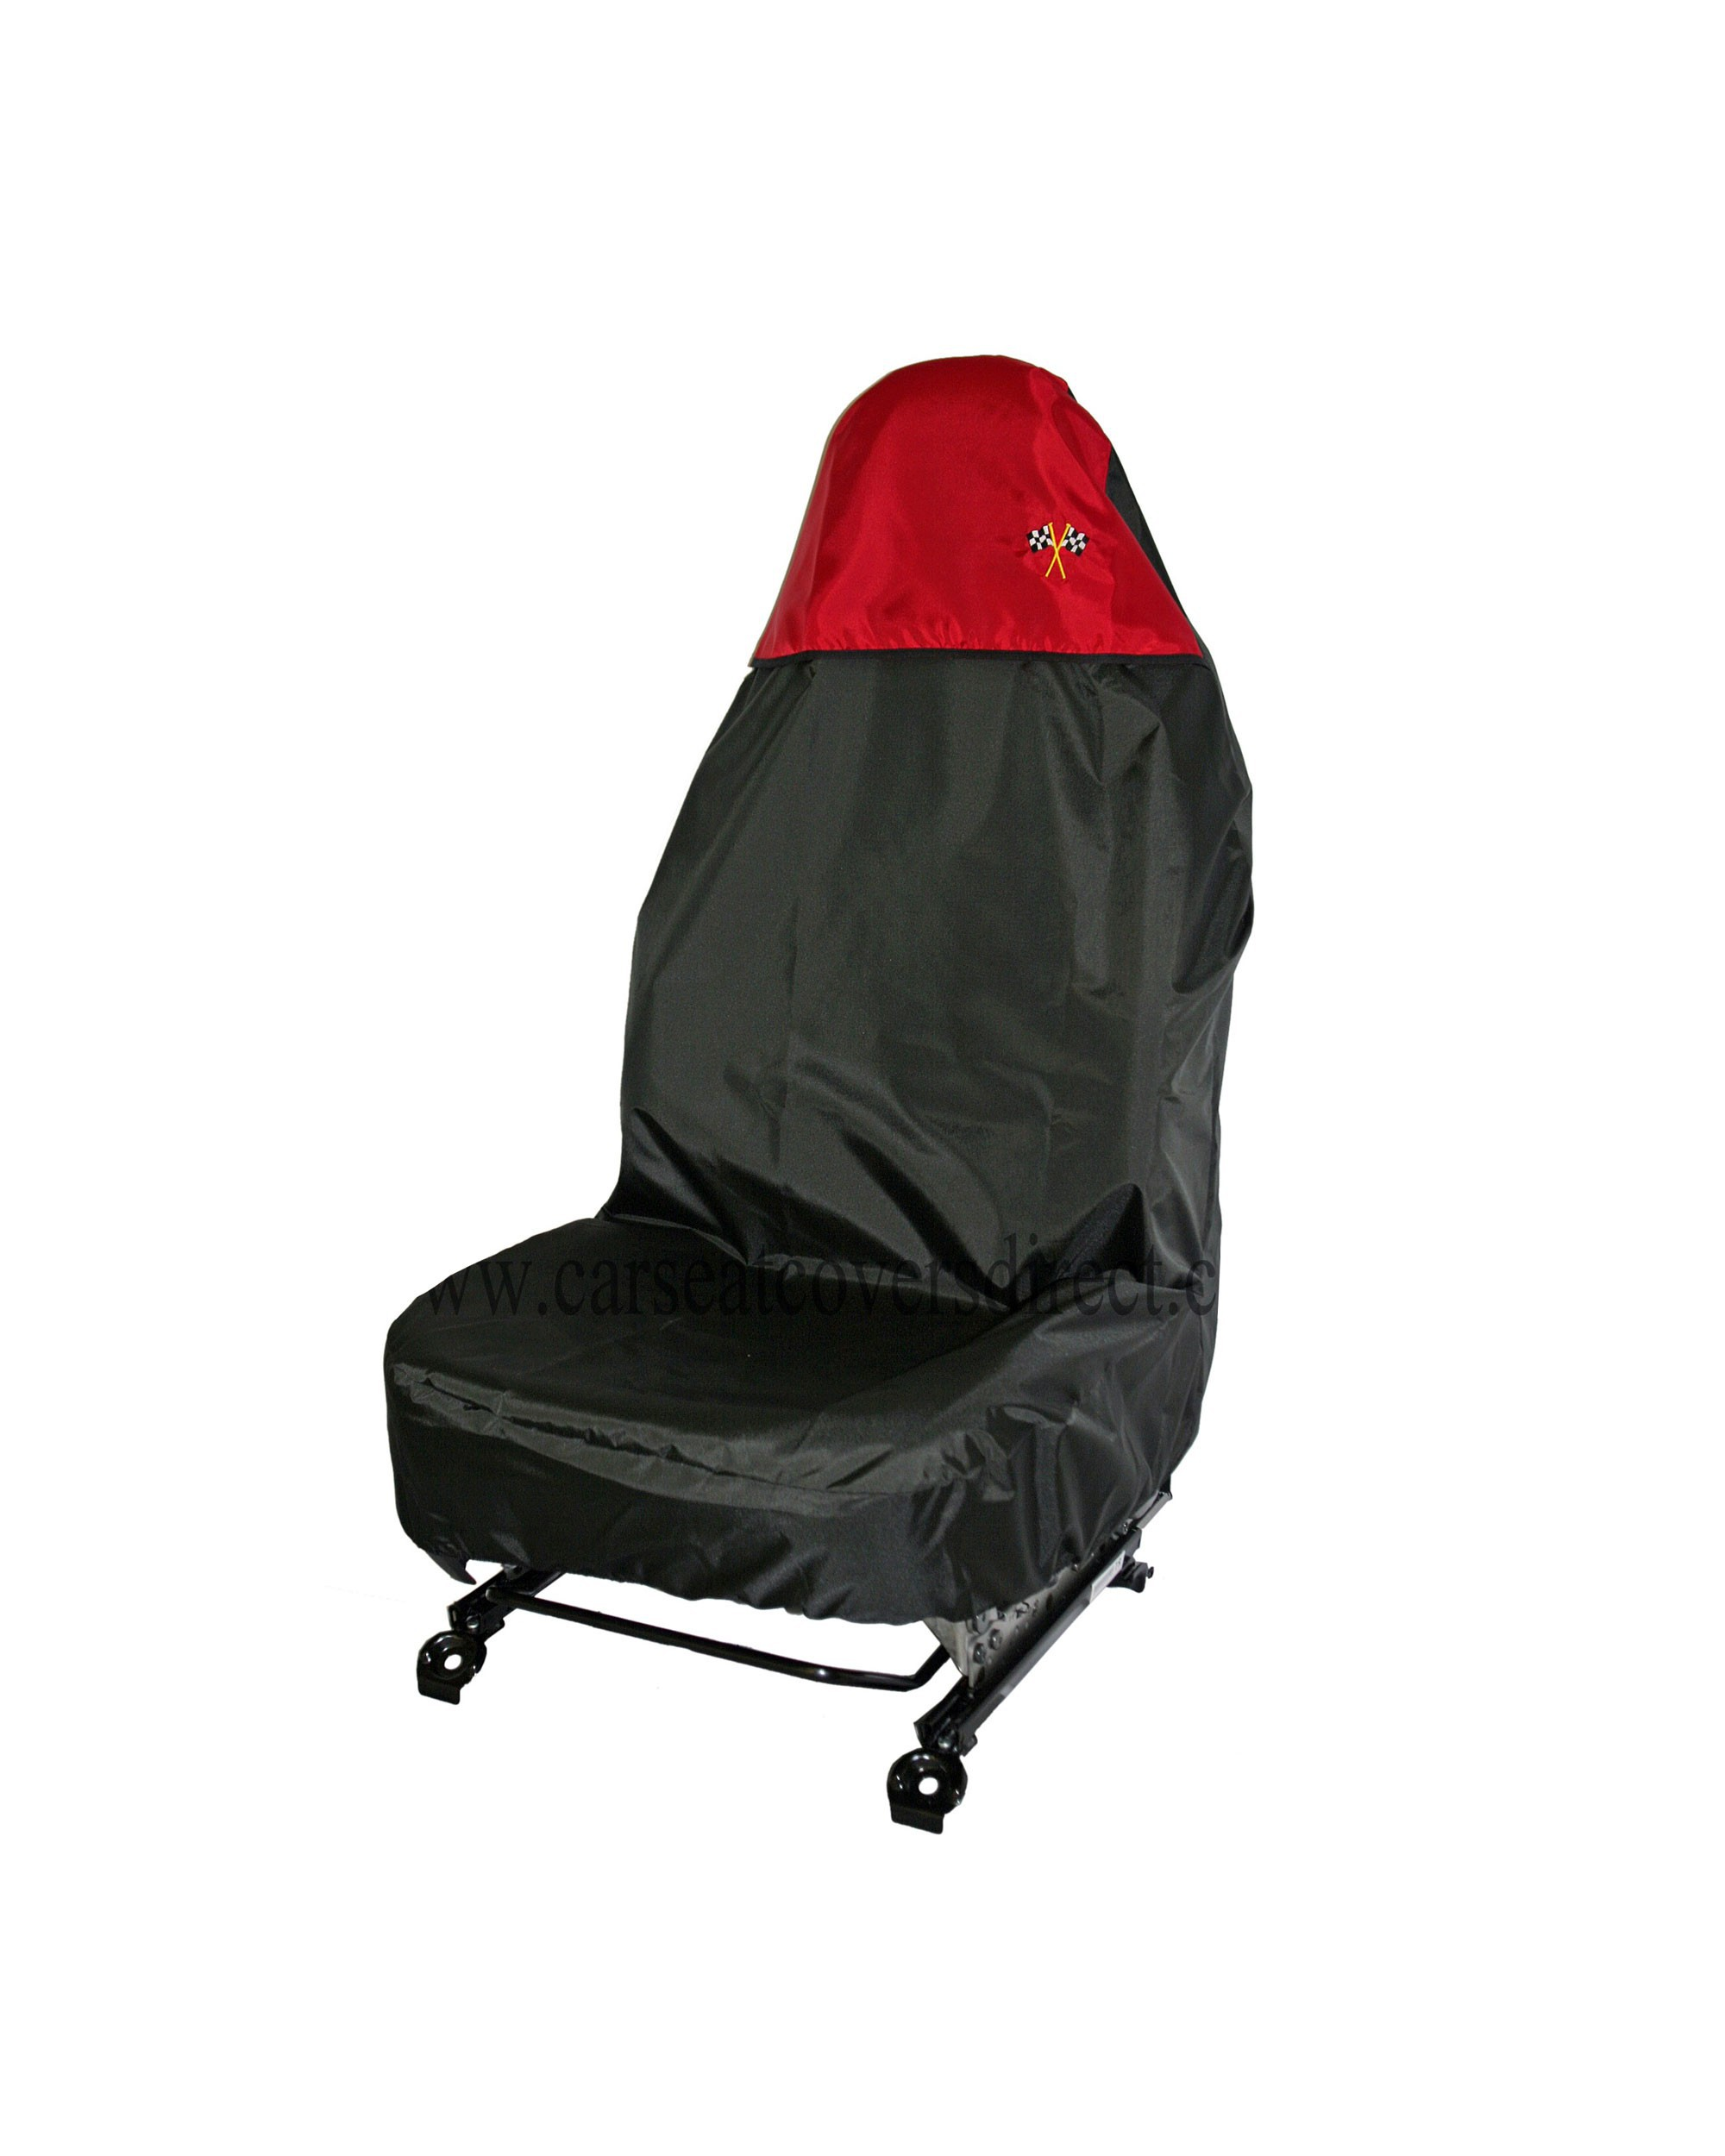 Single polyester seat protector